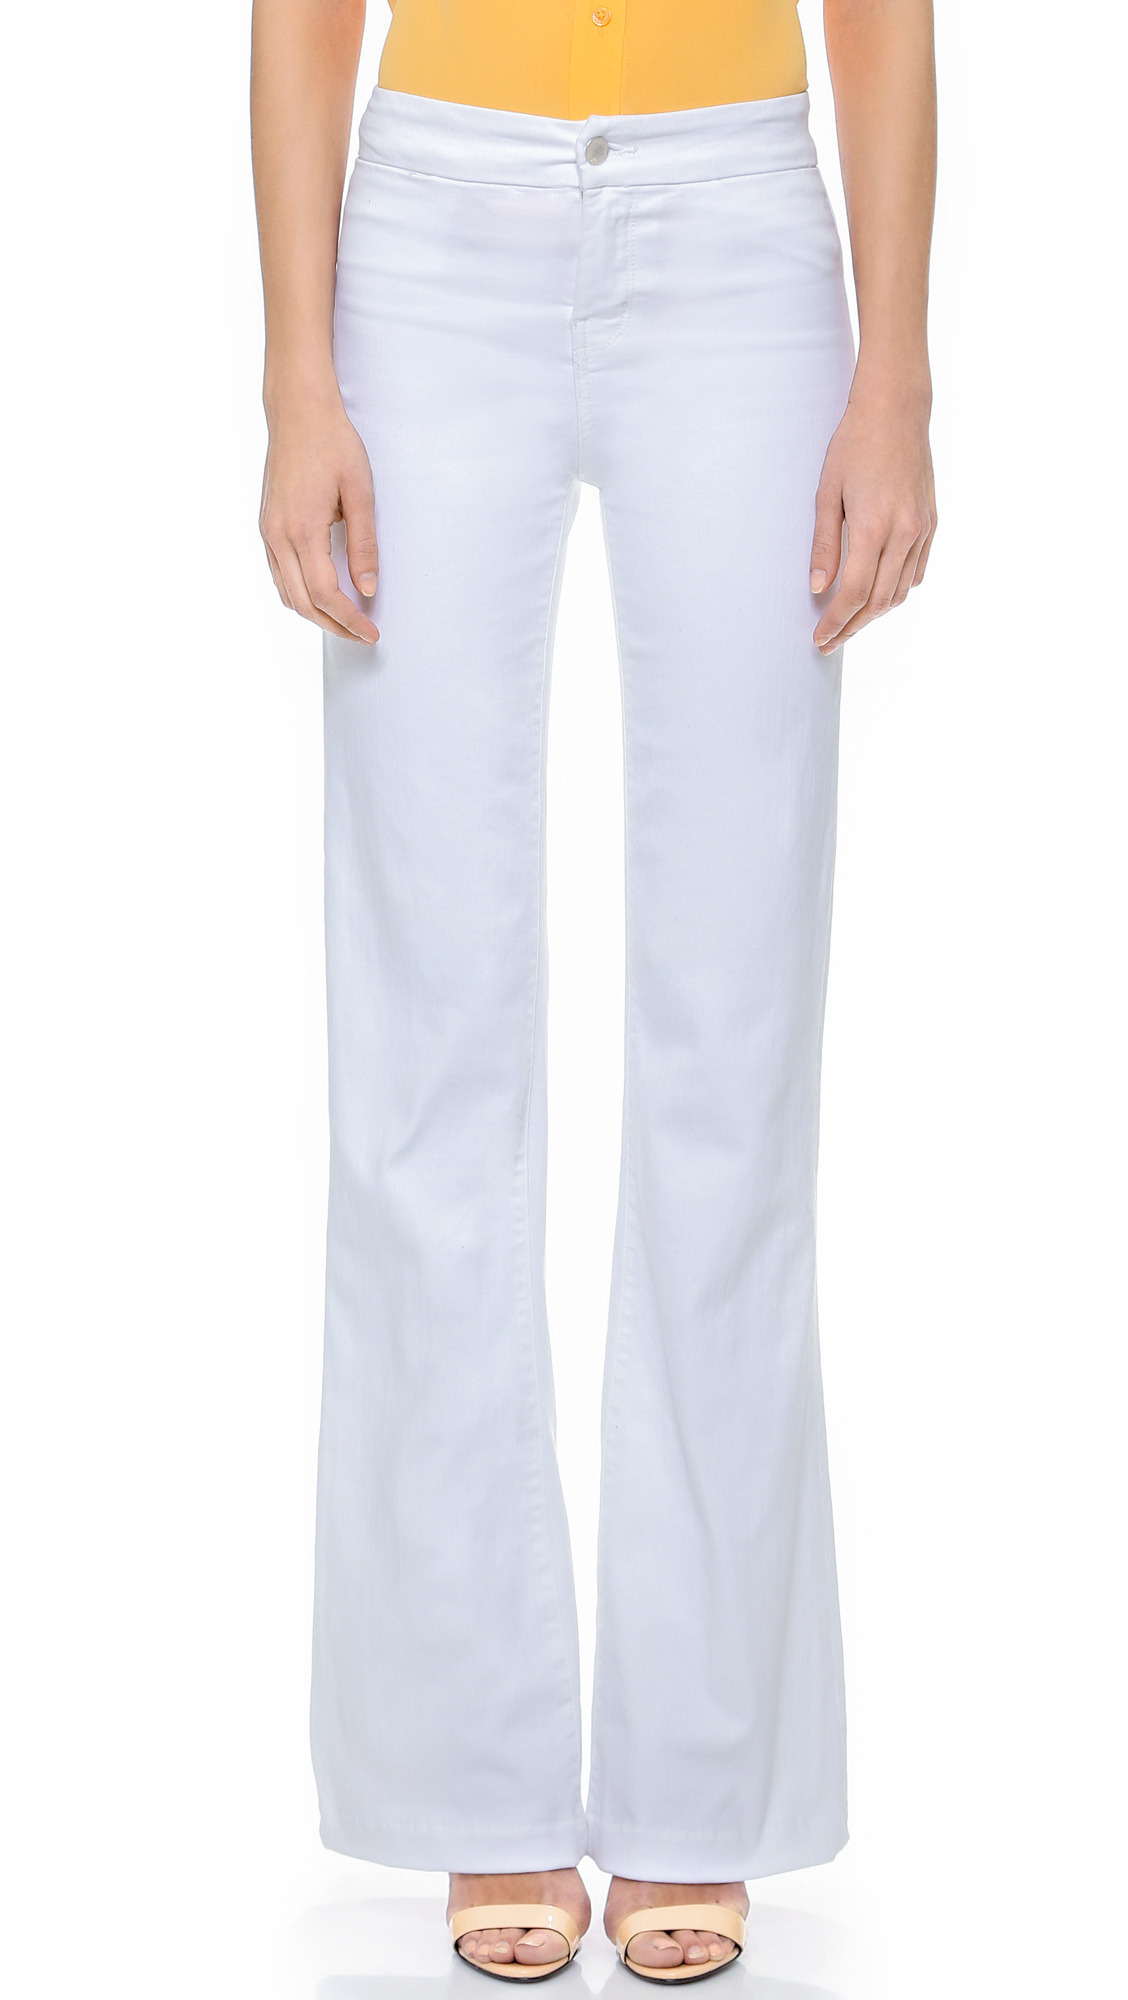 J brand High Rise Tailored Flare Jeans in White (Blanc) - Save 40% | Lyst